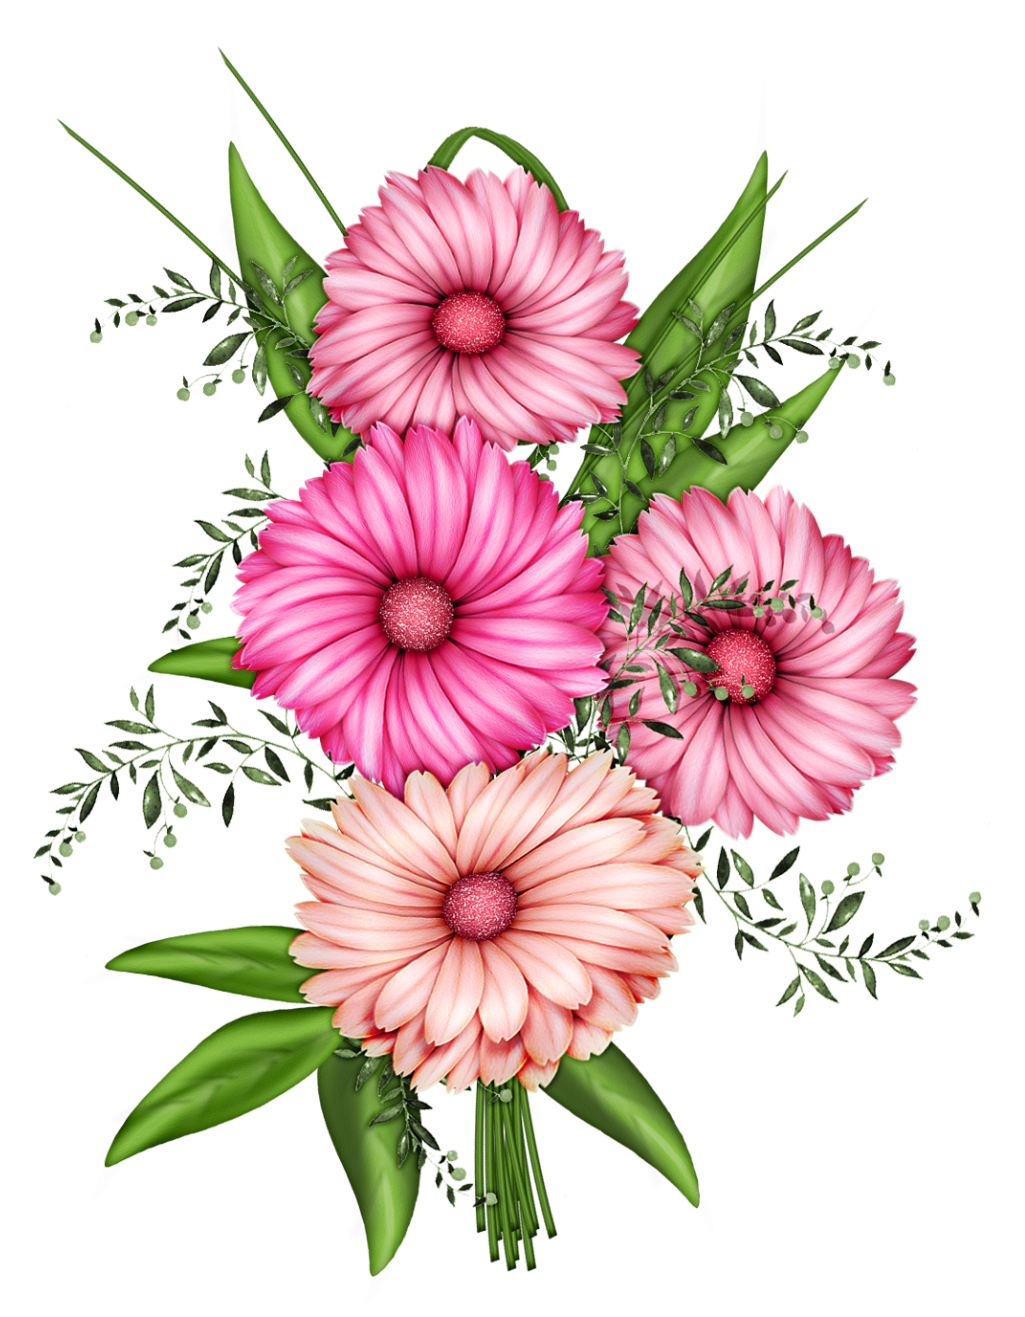 Flower images clipart picture transparent stock Flowers Transparent PNG Clipart | Flowers | Pinterest | Flowers ... picture transparent stock